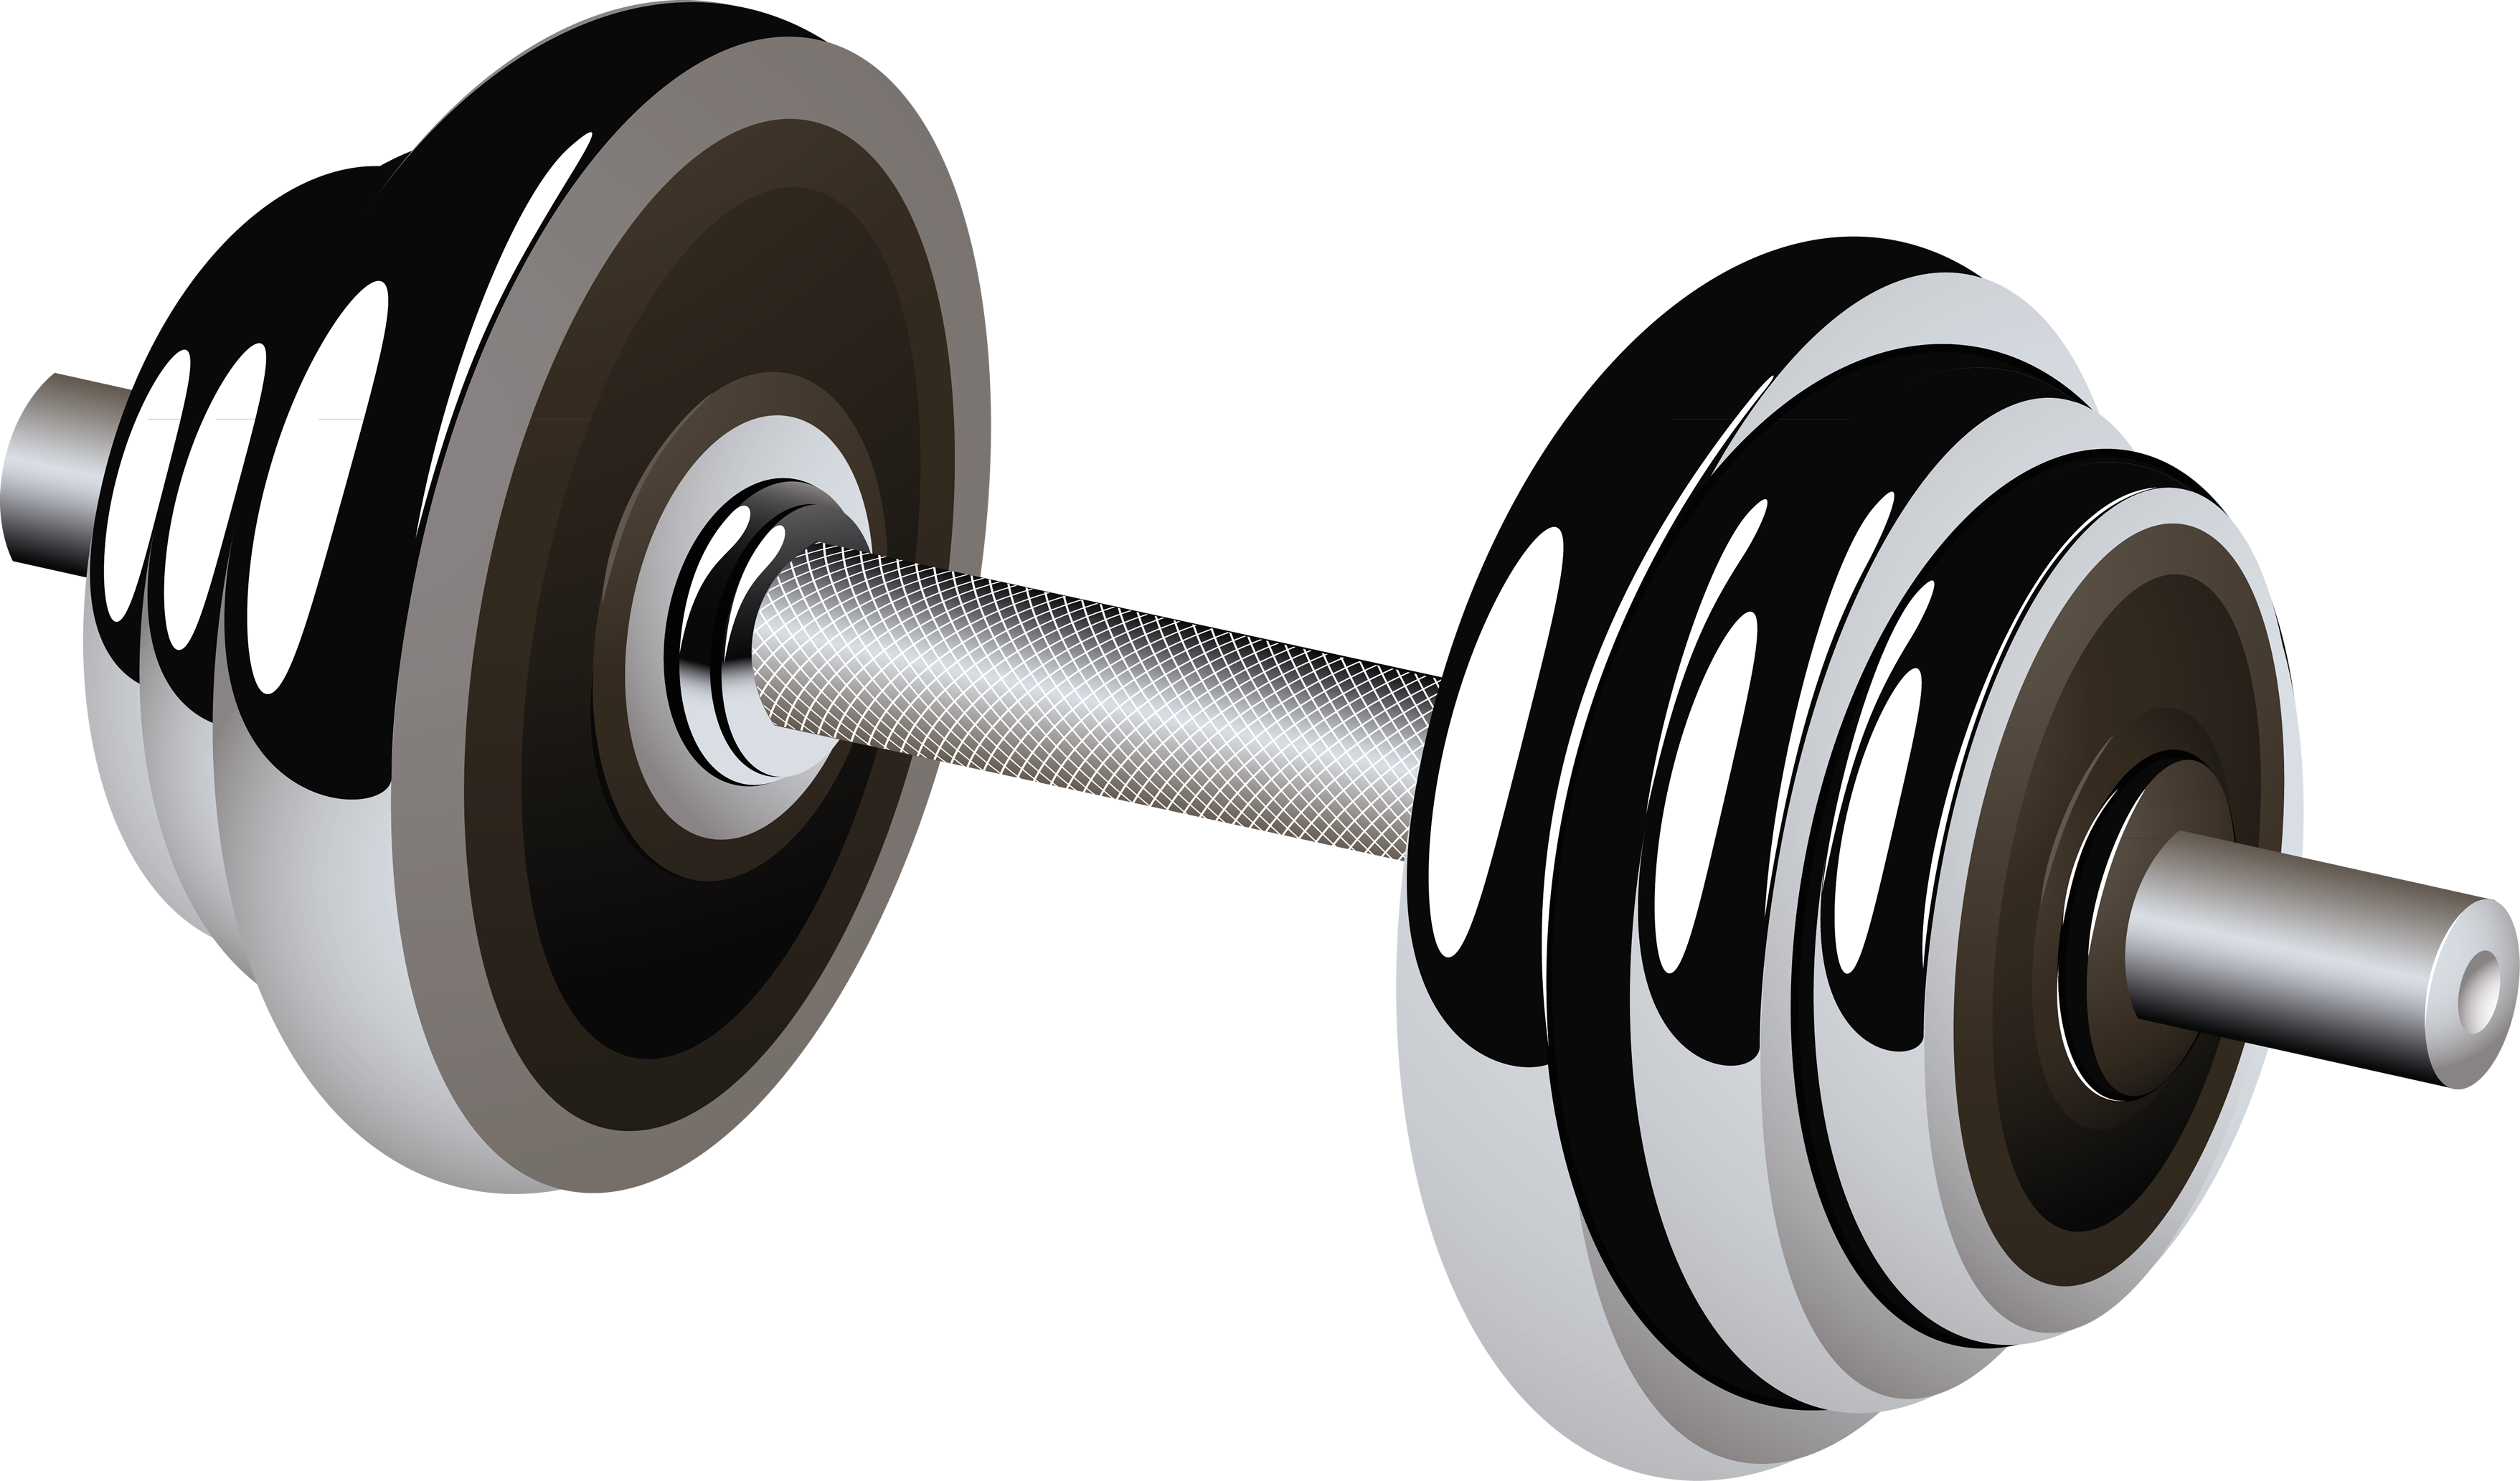 Weight Lifting Png Hd - Barbell HD PNG Transparent Barbell HD.PNG Images. | PlusPNG